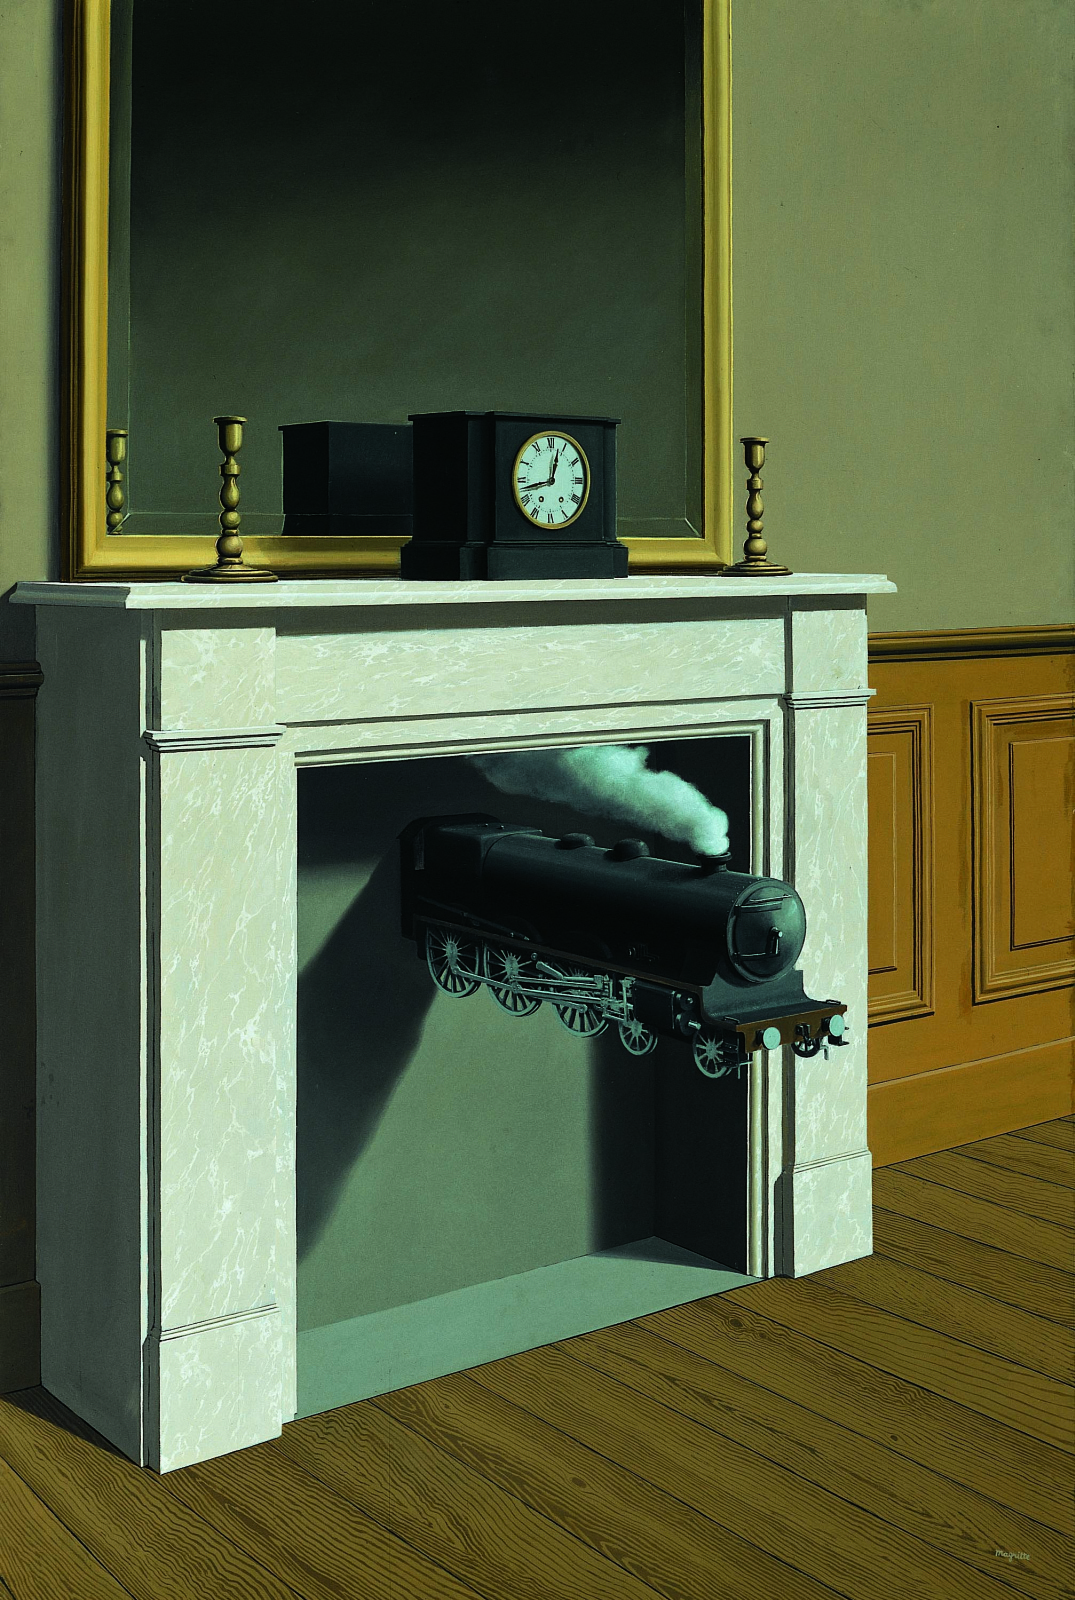 Rene Magritte. Time Transfixed